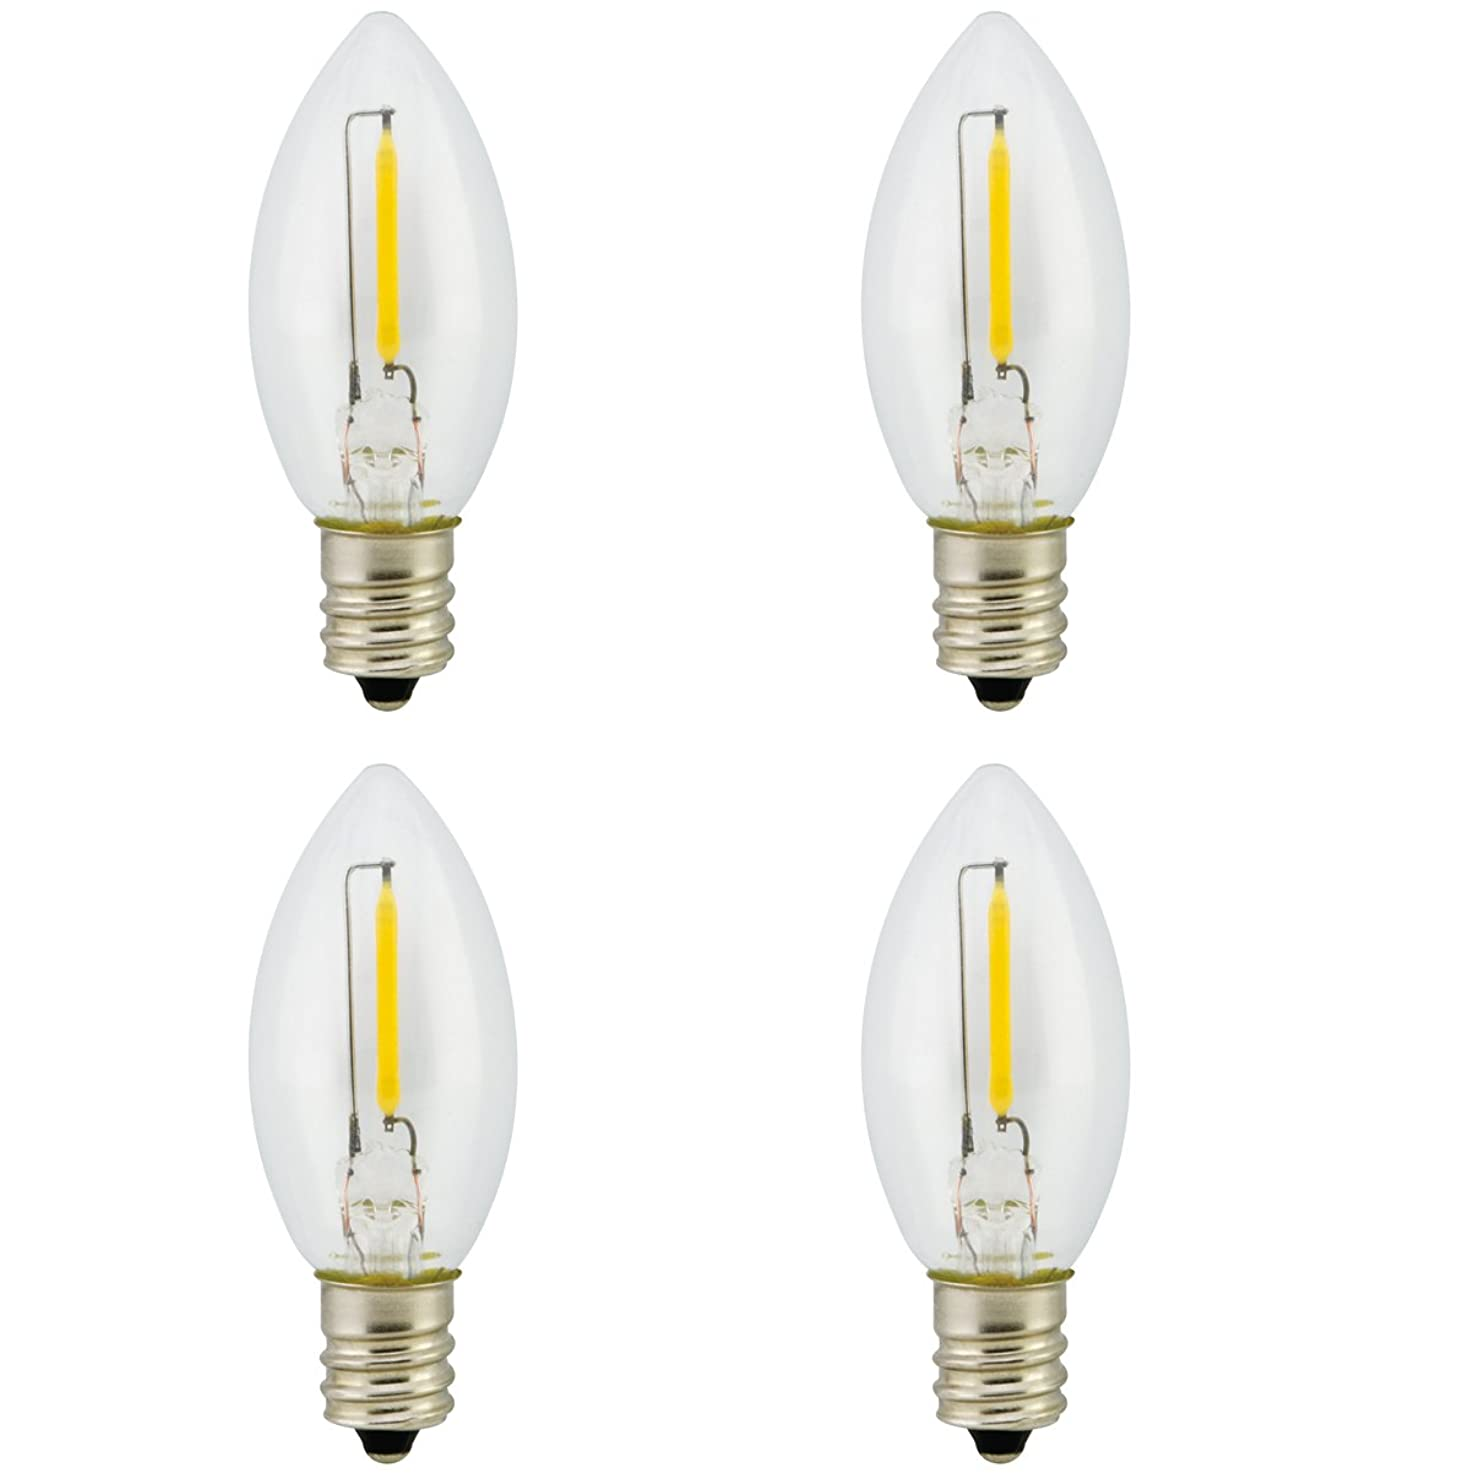 Promotion! Landlite Night Light Bulb LED C7 1W, Bullet/Candle Shape LED Bulb 120V 1W E12 Candelabra Screw Base, Accent Wall Night Light/Window Candles/Christmas Villages Replacement Bulb, 4Pack